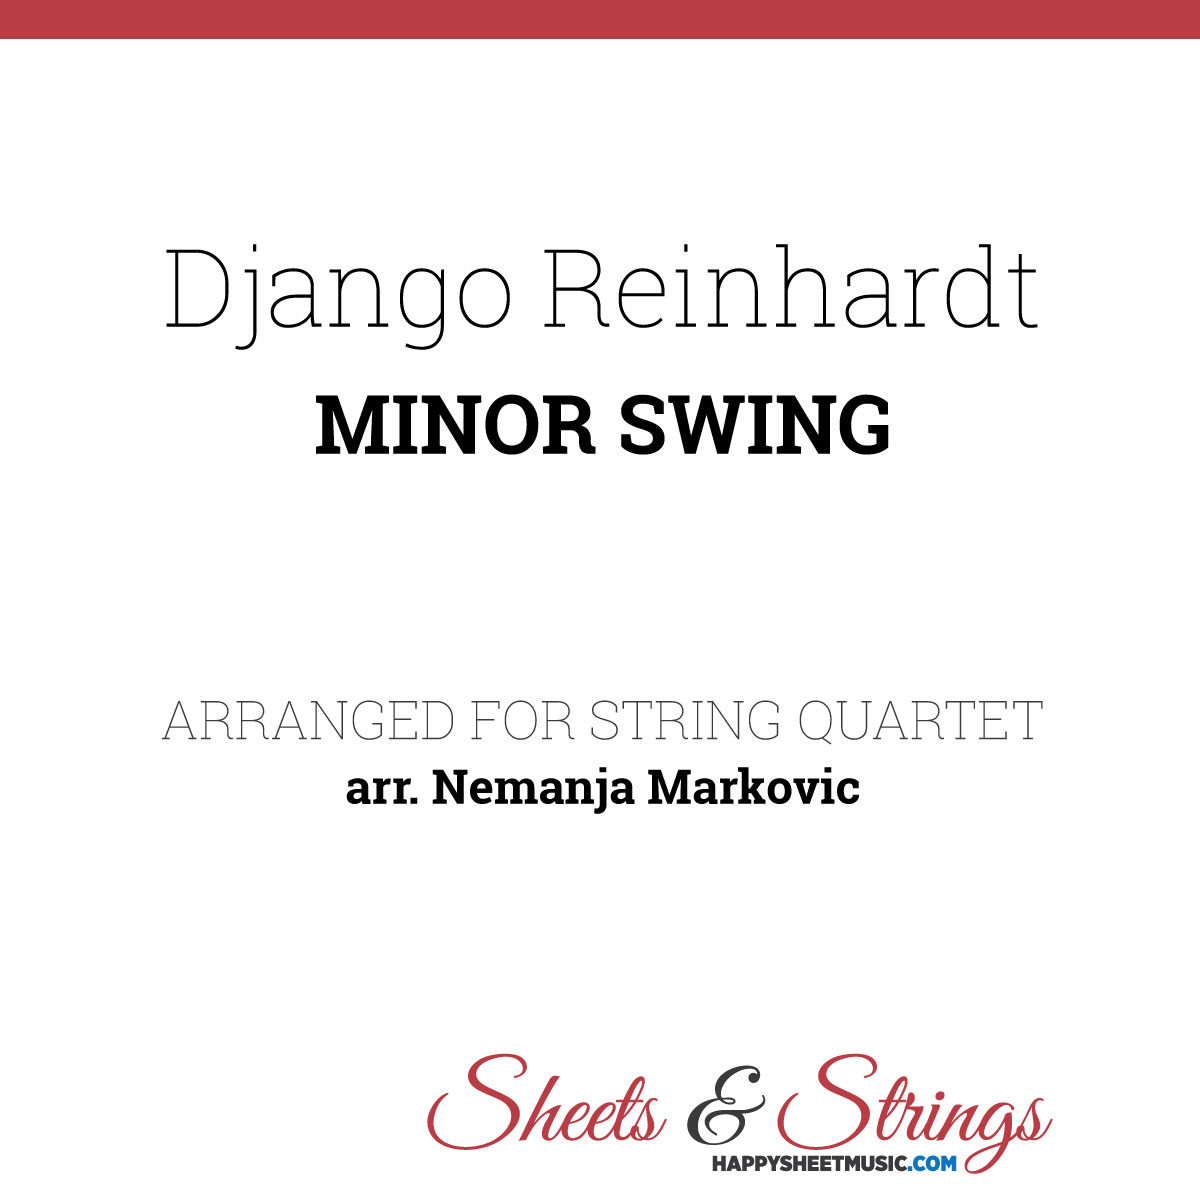 Django Reinhardt ft. Stephane Grappelli - Minor Swing - Sheet Music for String Quartet - Music Arrangement for String Quartet